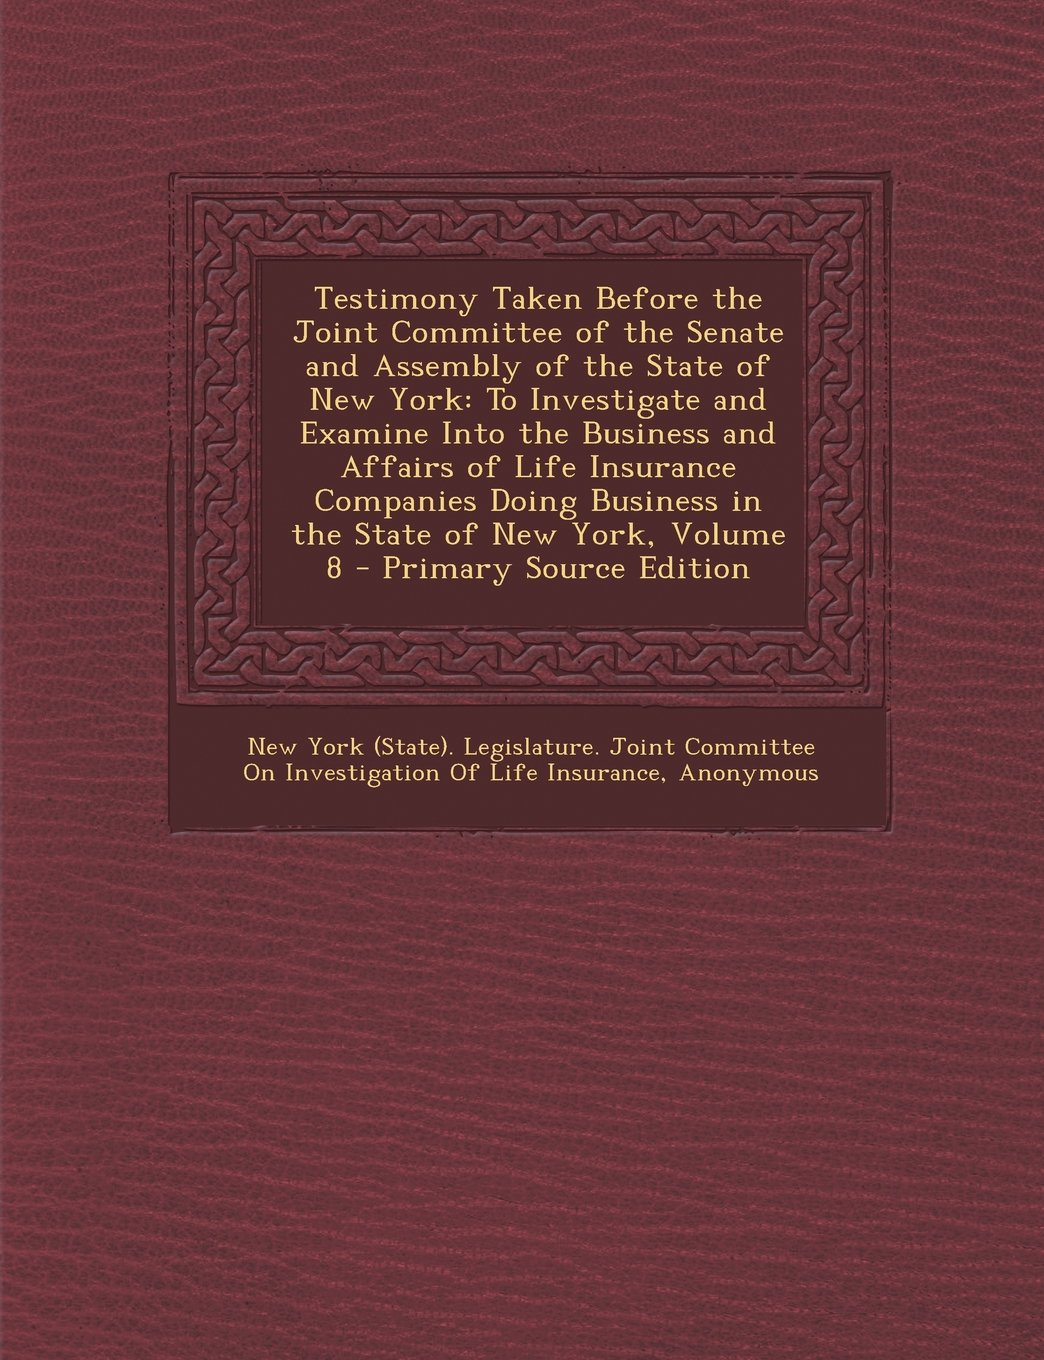 Download Testimony Taken Before the Joint Committee of the Senate and Assembly of the State of New York: To Investigate and Examine Into the Business and ... Business in the State of New York, Volume 8 pdf